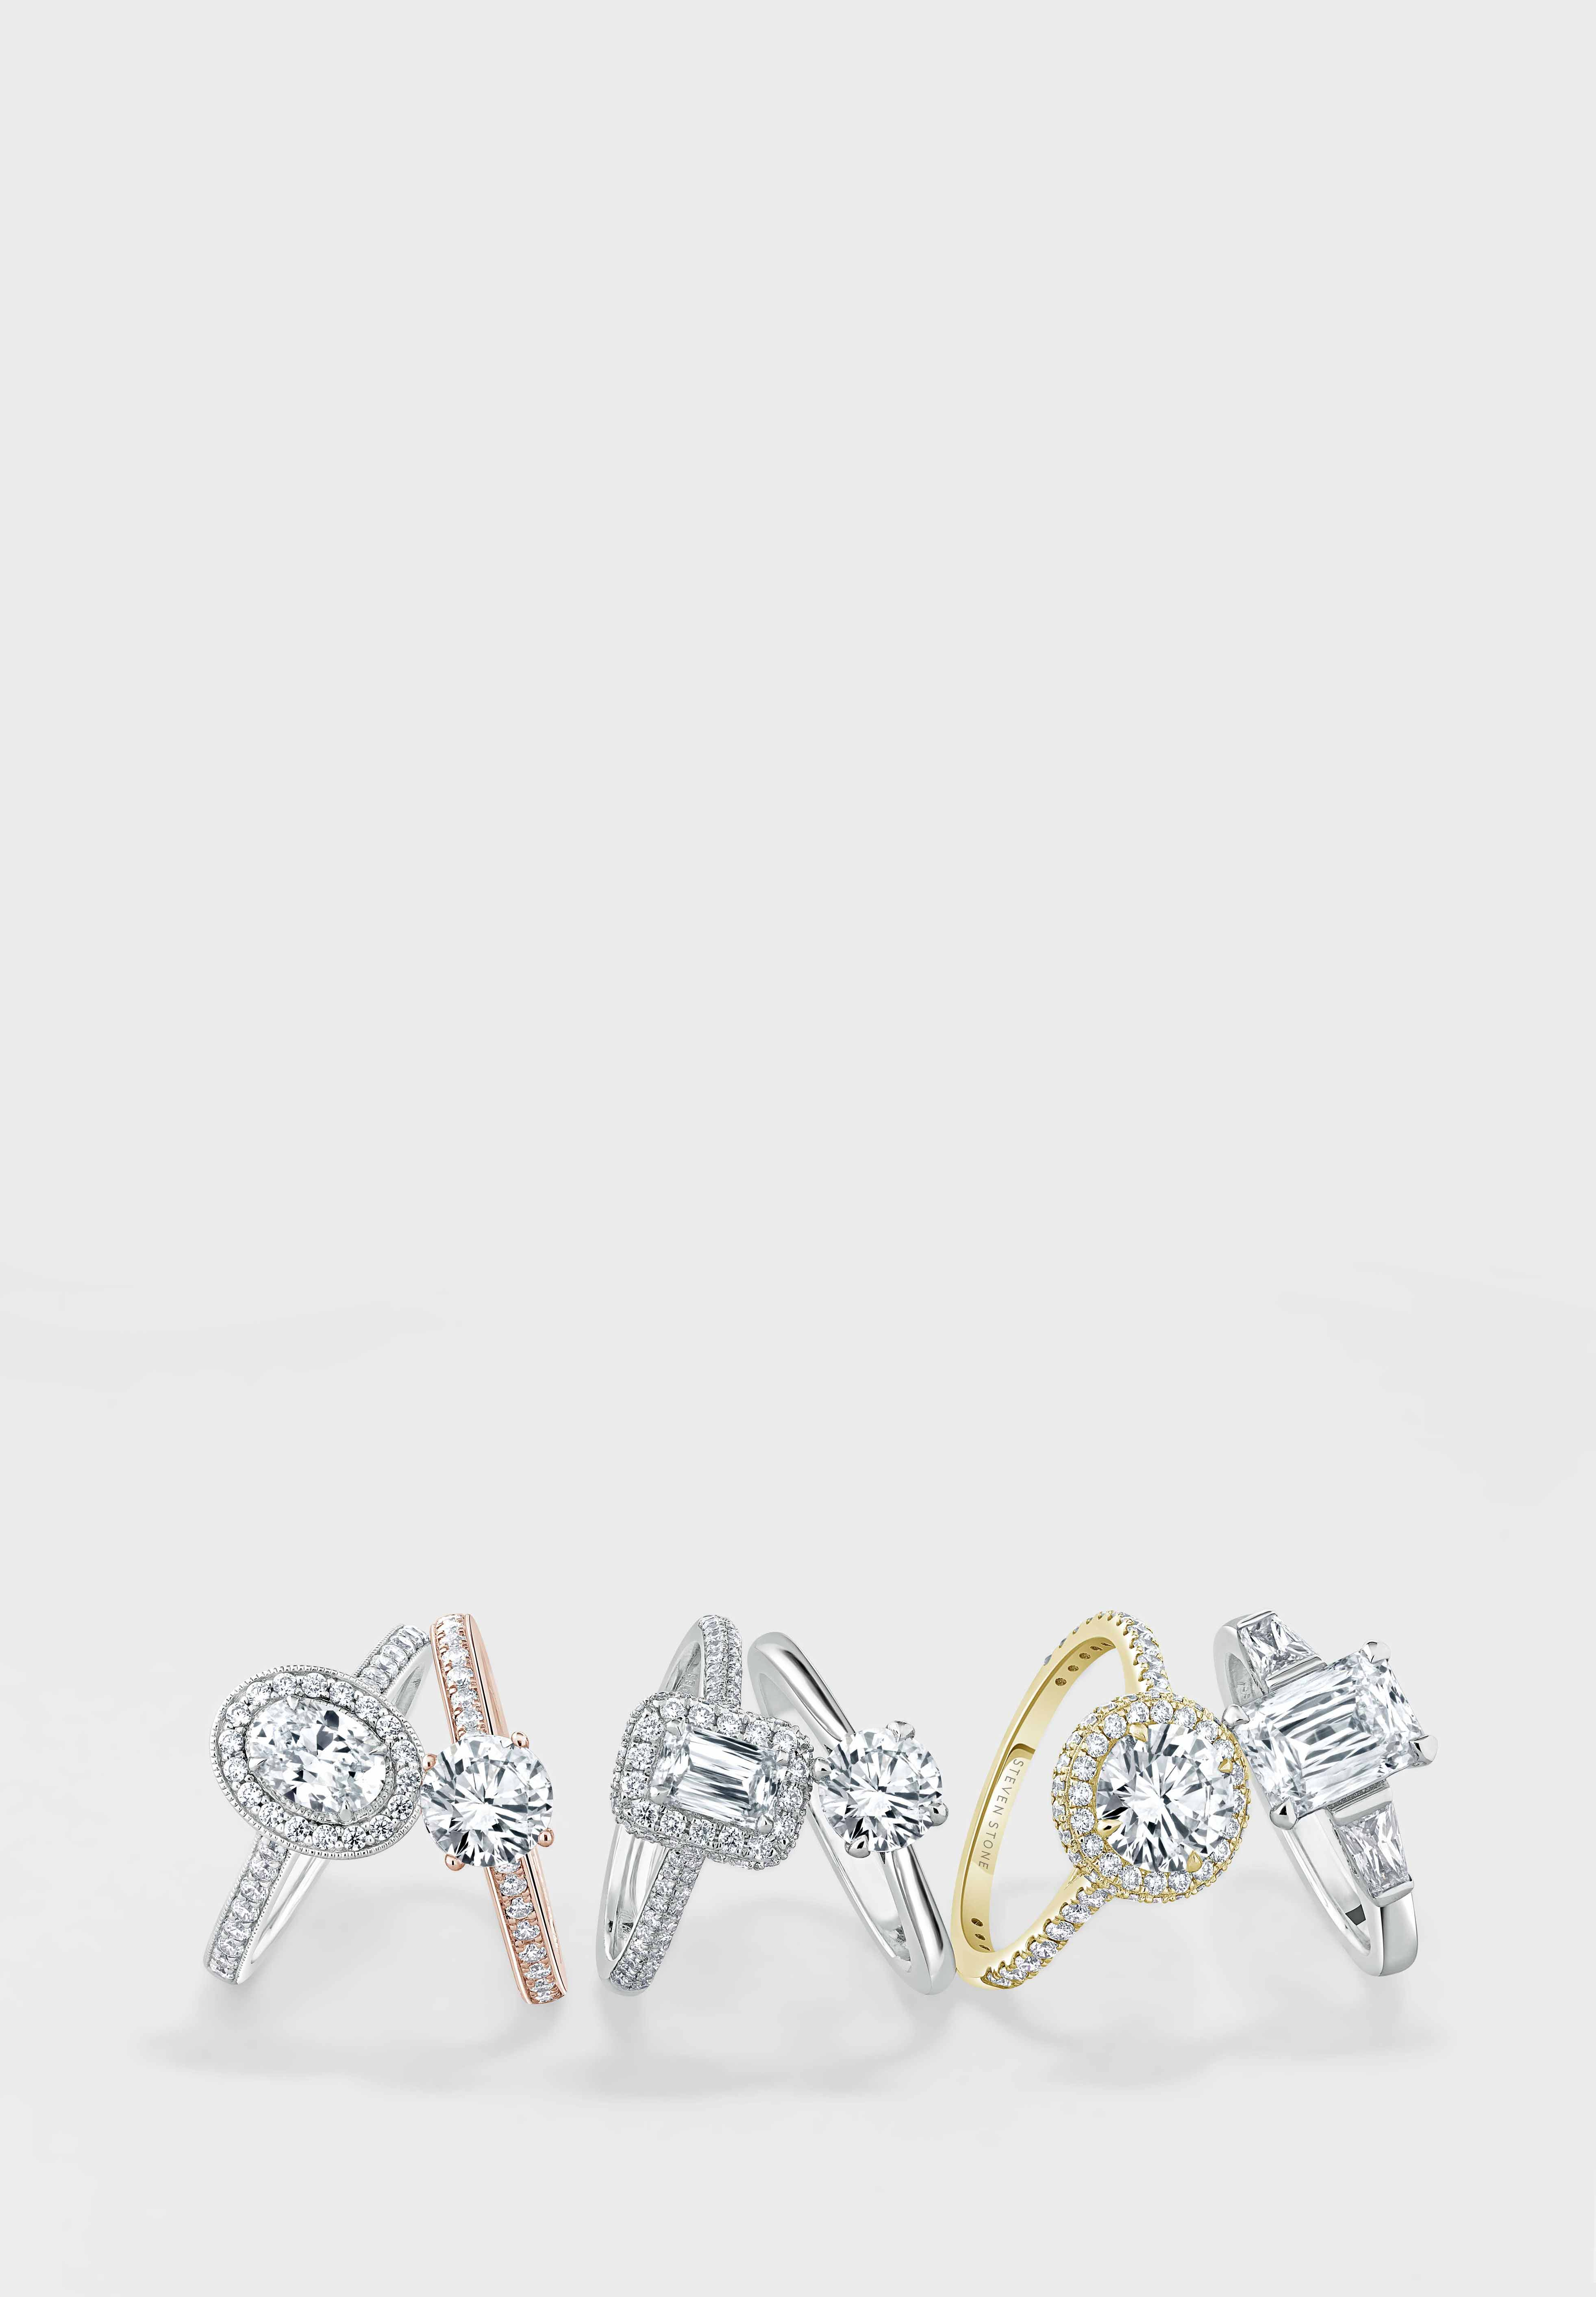 Rose Gold Solitaire Engagement Rings - Steven Stone